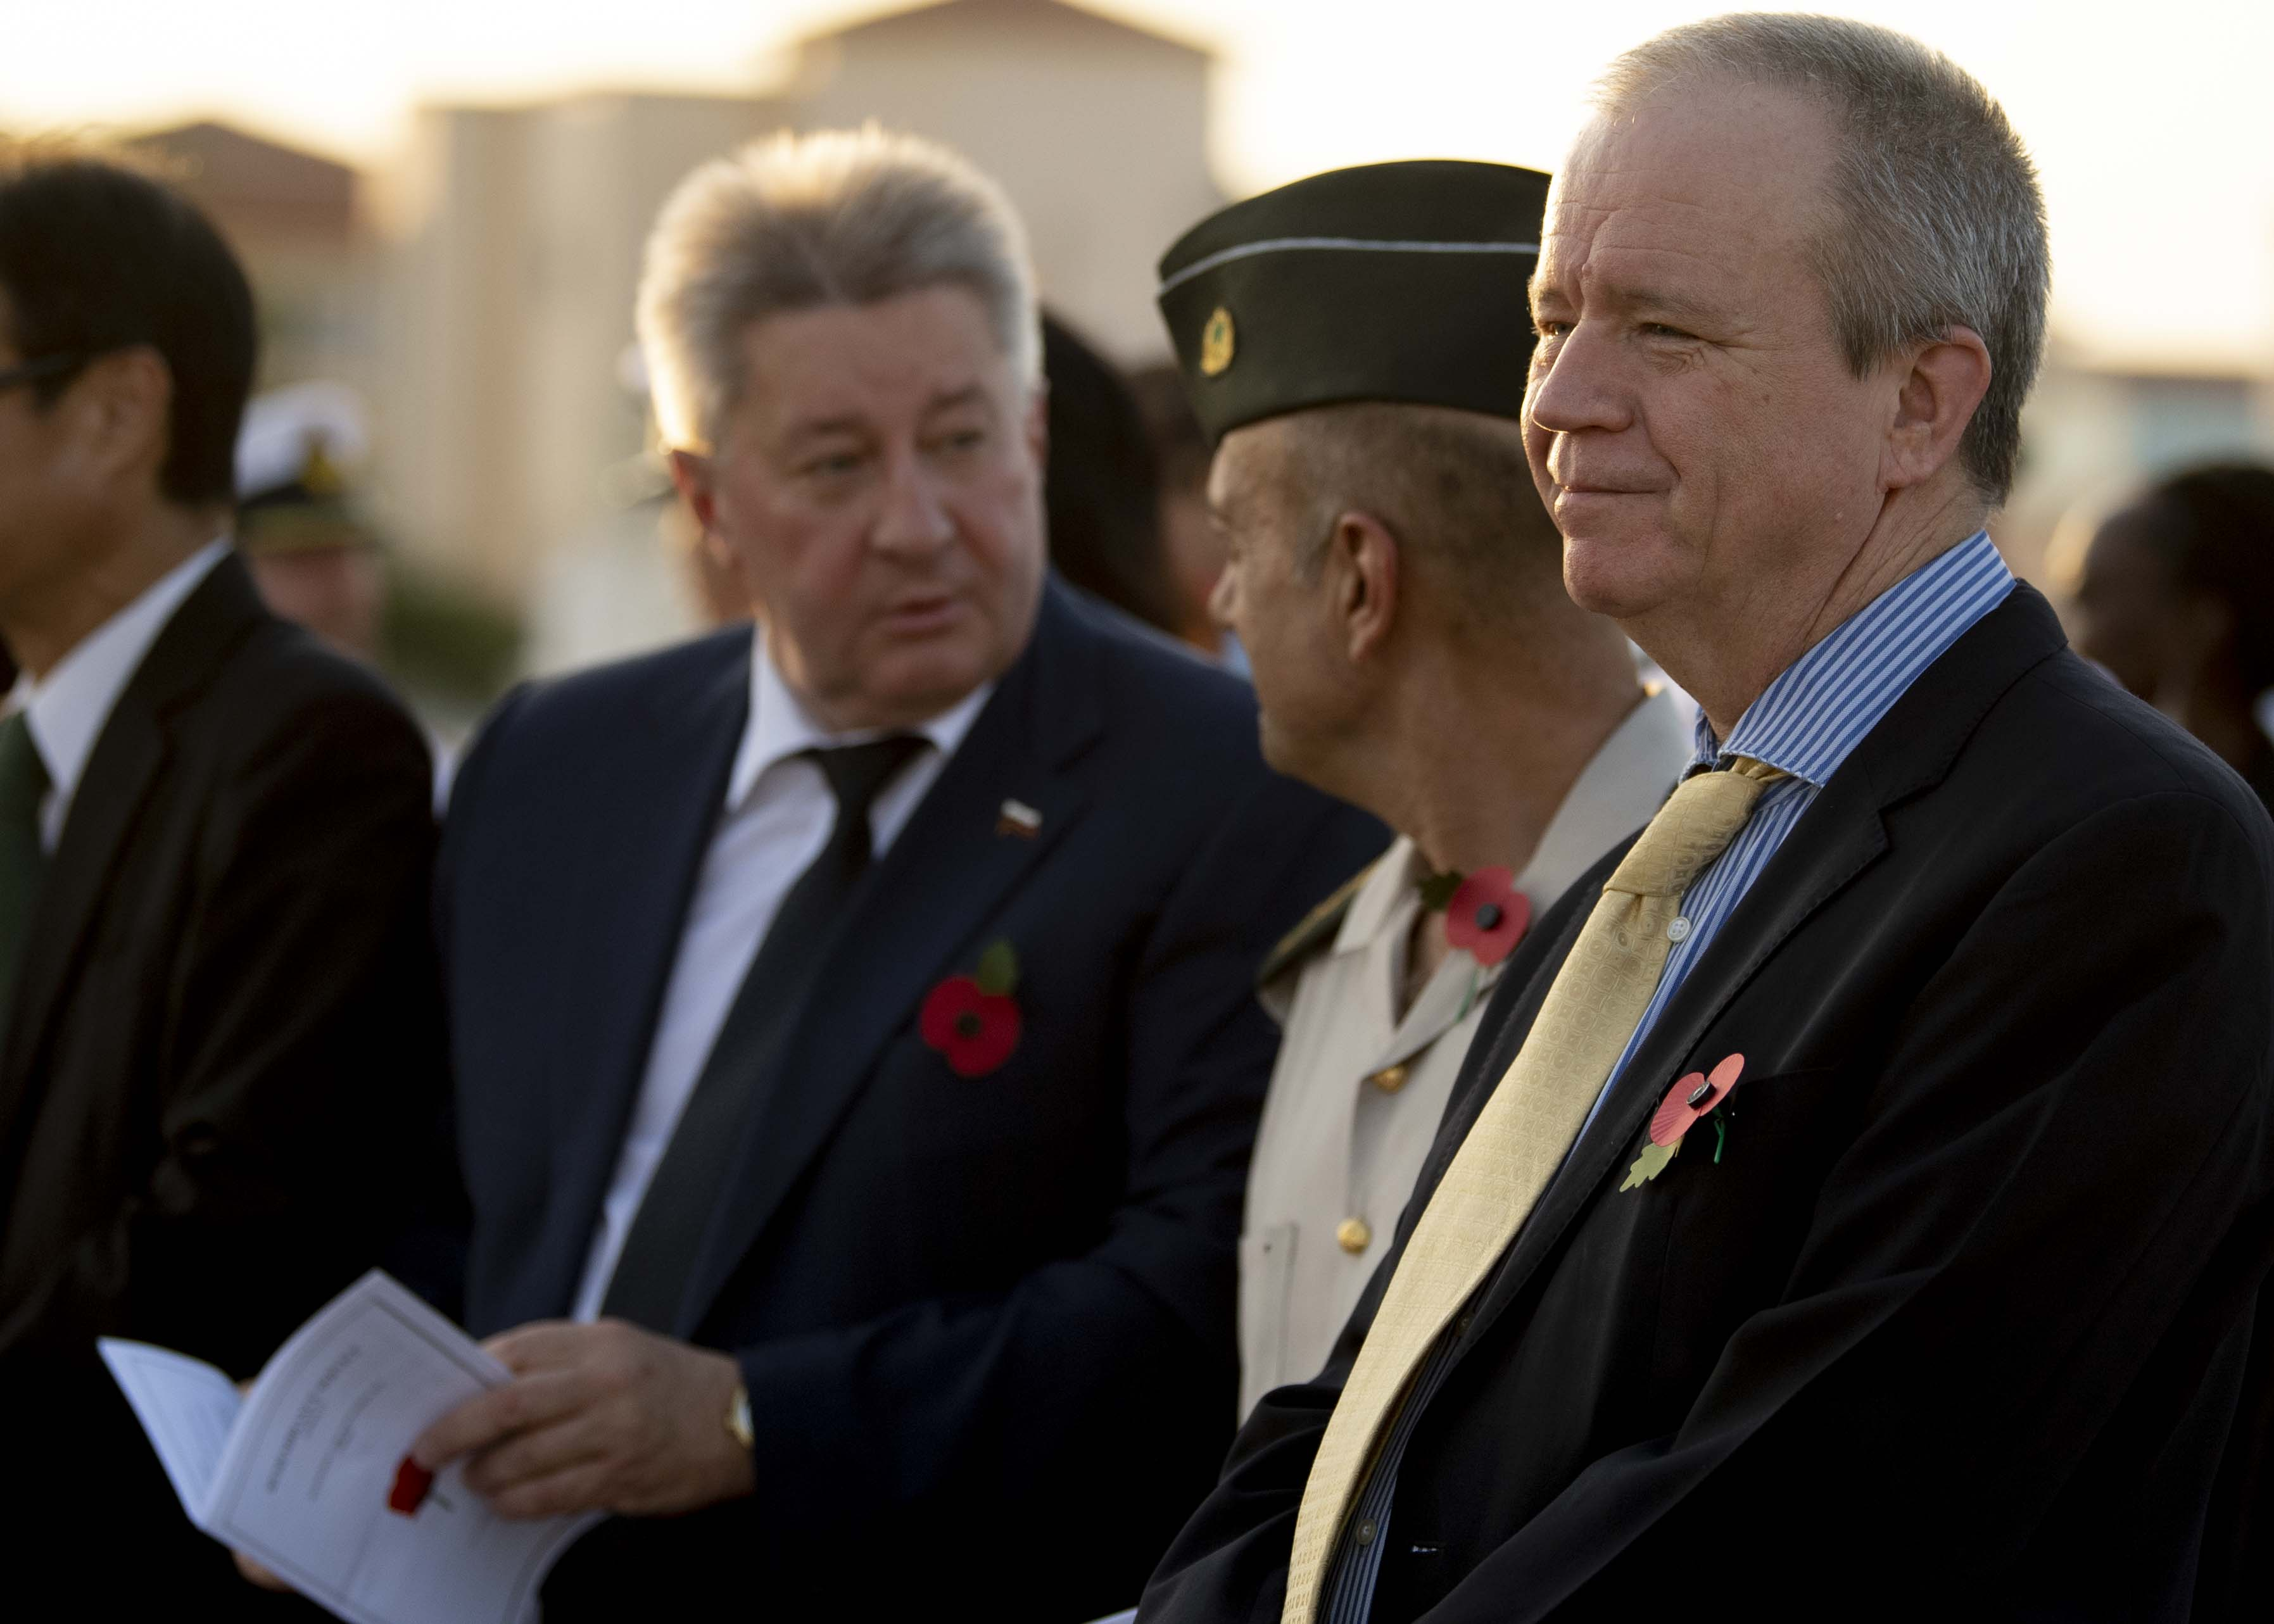 Amb. Larry André Jr., U.S. Ambassador to the Republic of Djibouti, waits for a Remembrance Day service to begin in Djibouti City, Djibouti, Nov. 13, 2019. Traditionally observed on November 11, Remembrance Day commemorates the day hostilities stopped on the western front during World War I. (U.S. Air Force photo by Staff Sgt. J.D. Strong II)